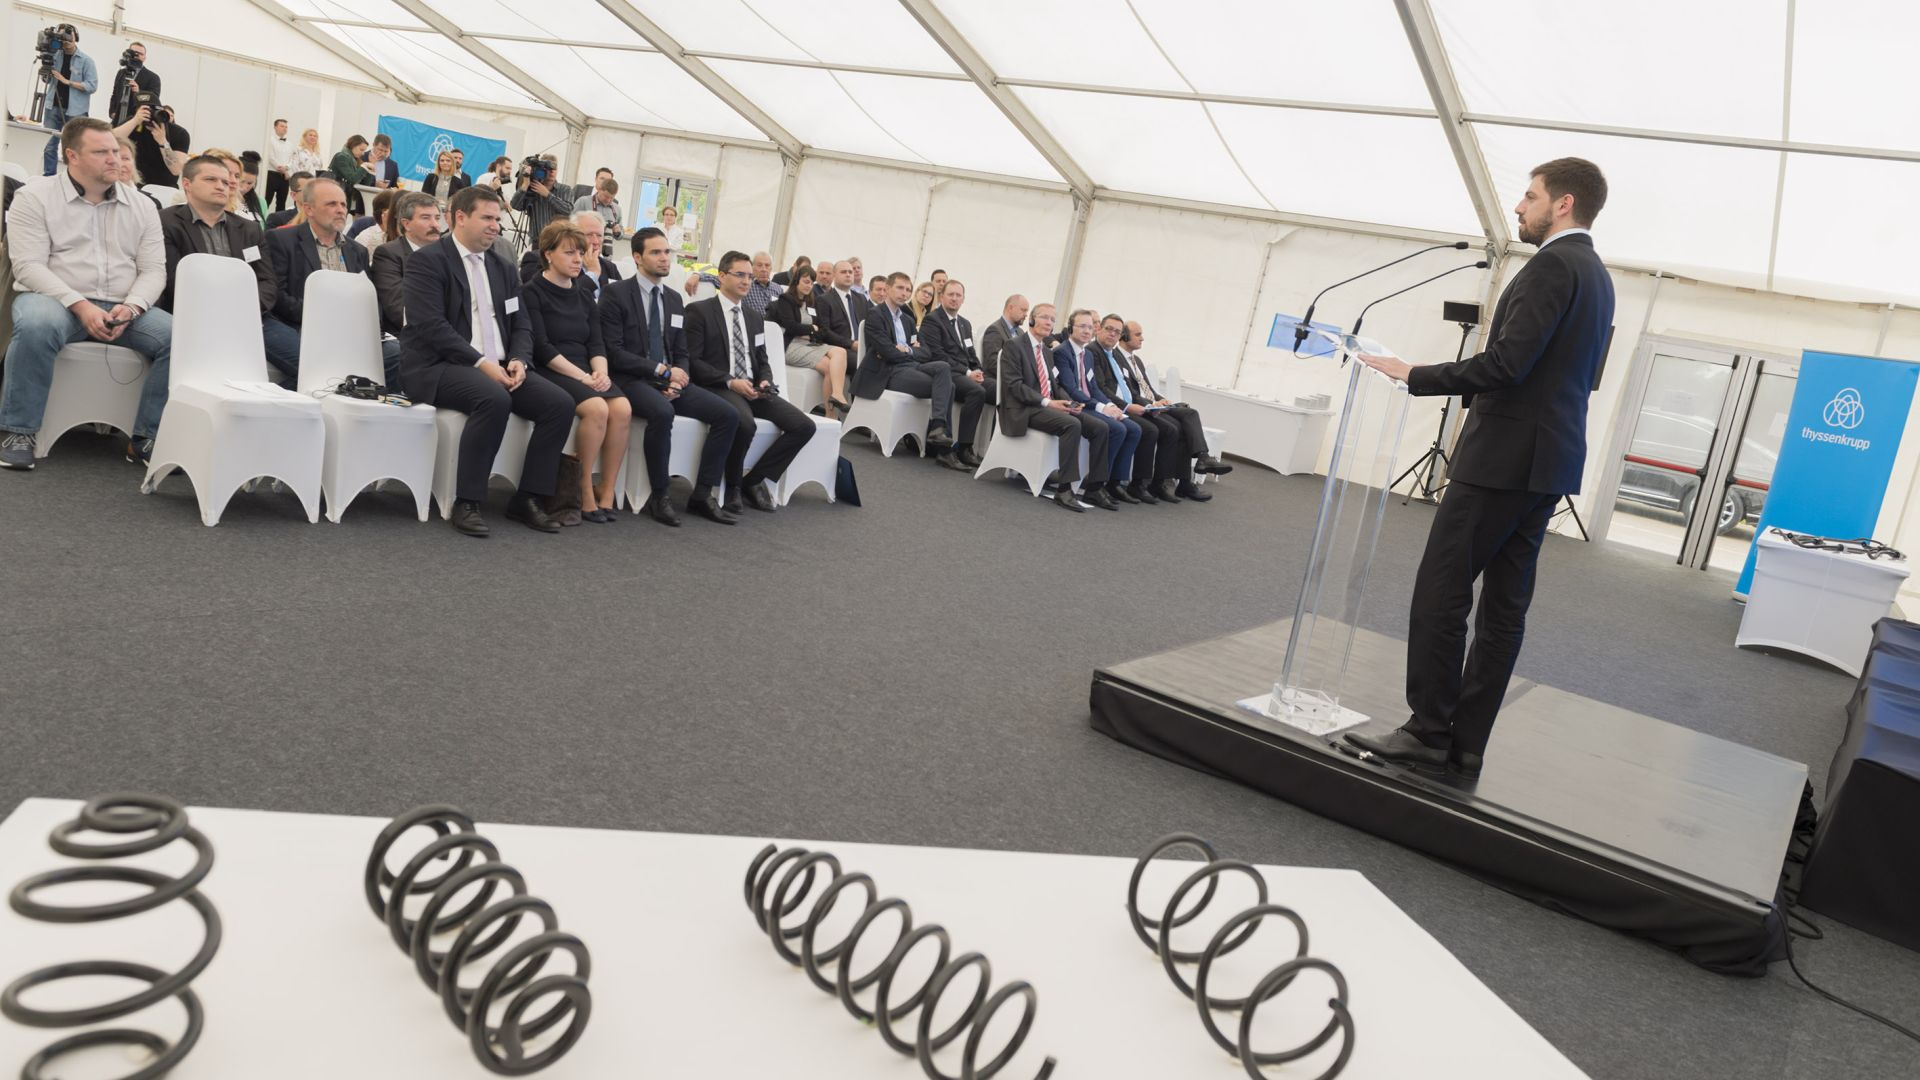 thyssenkrupp further strengthening its presence in Hungary with the Debrecen factory